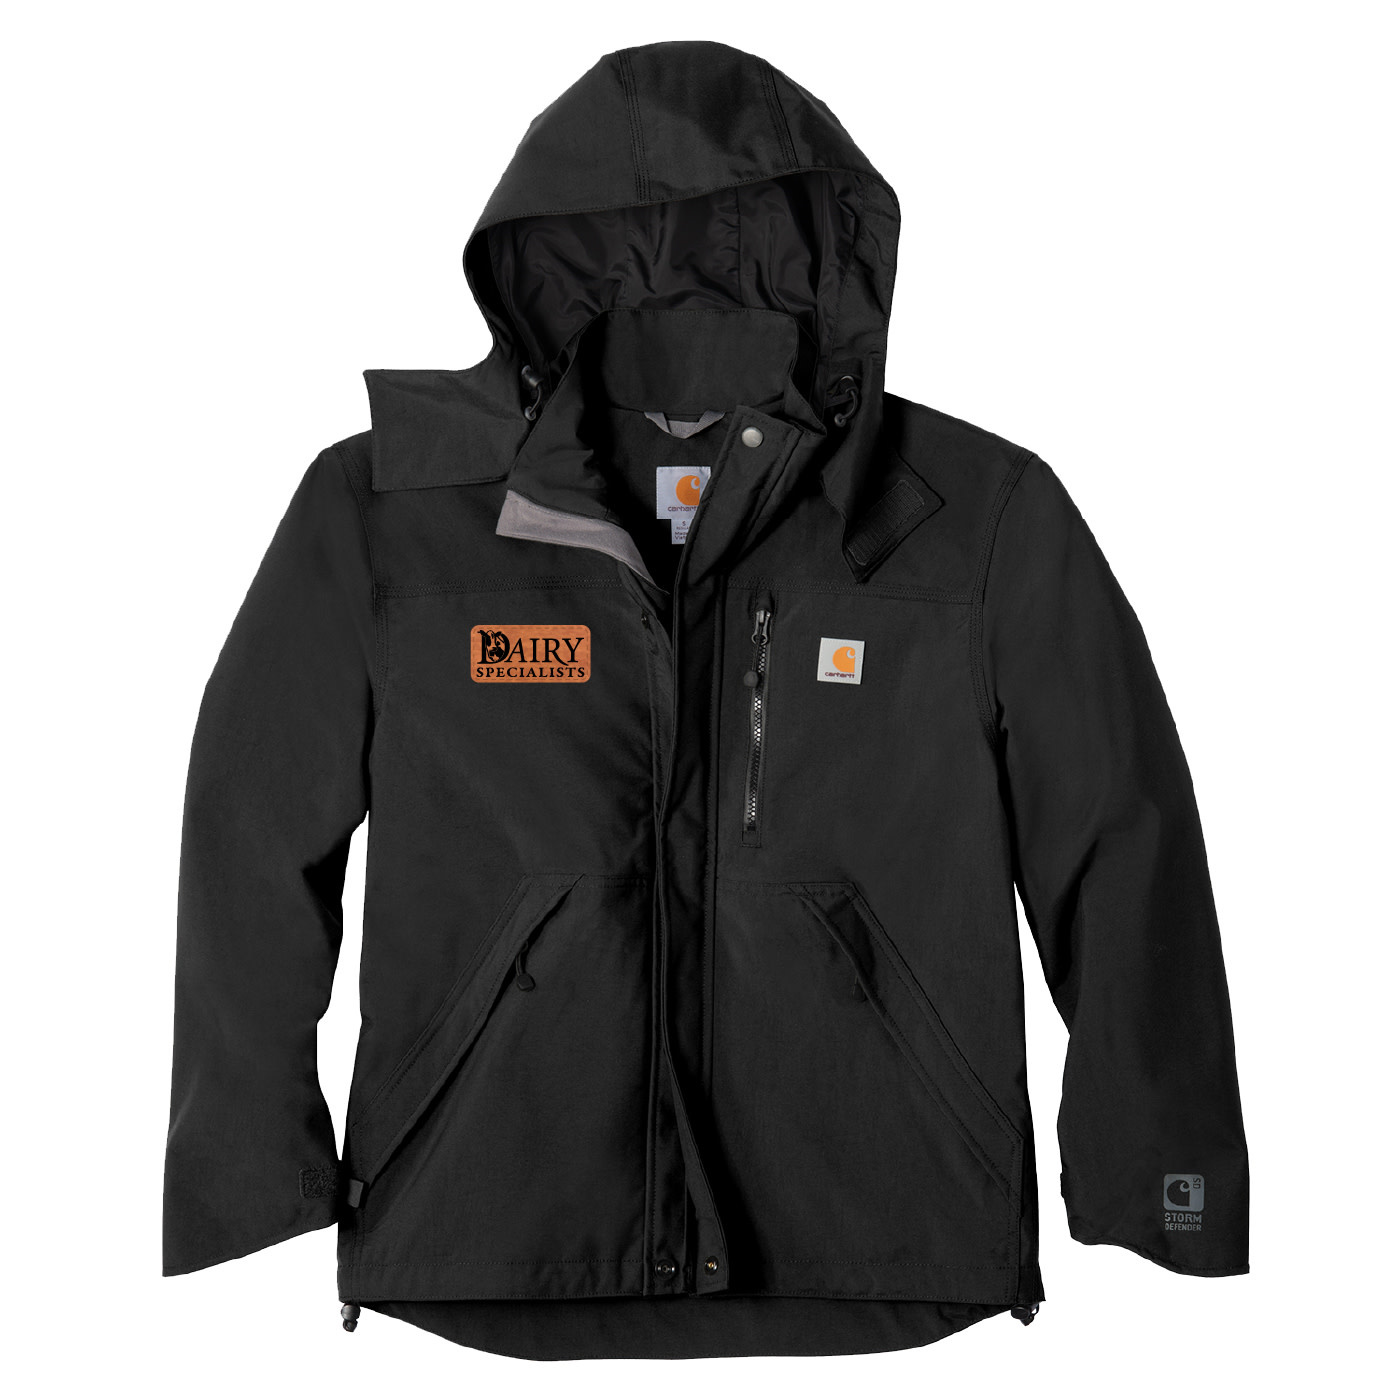 Carhartt Carhartt Shoreline Jacket (Black)